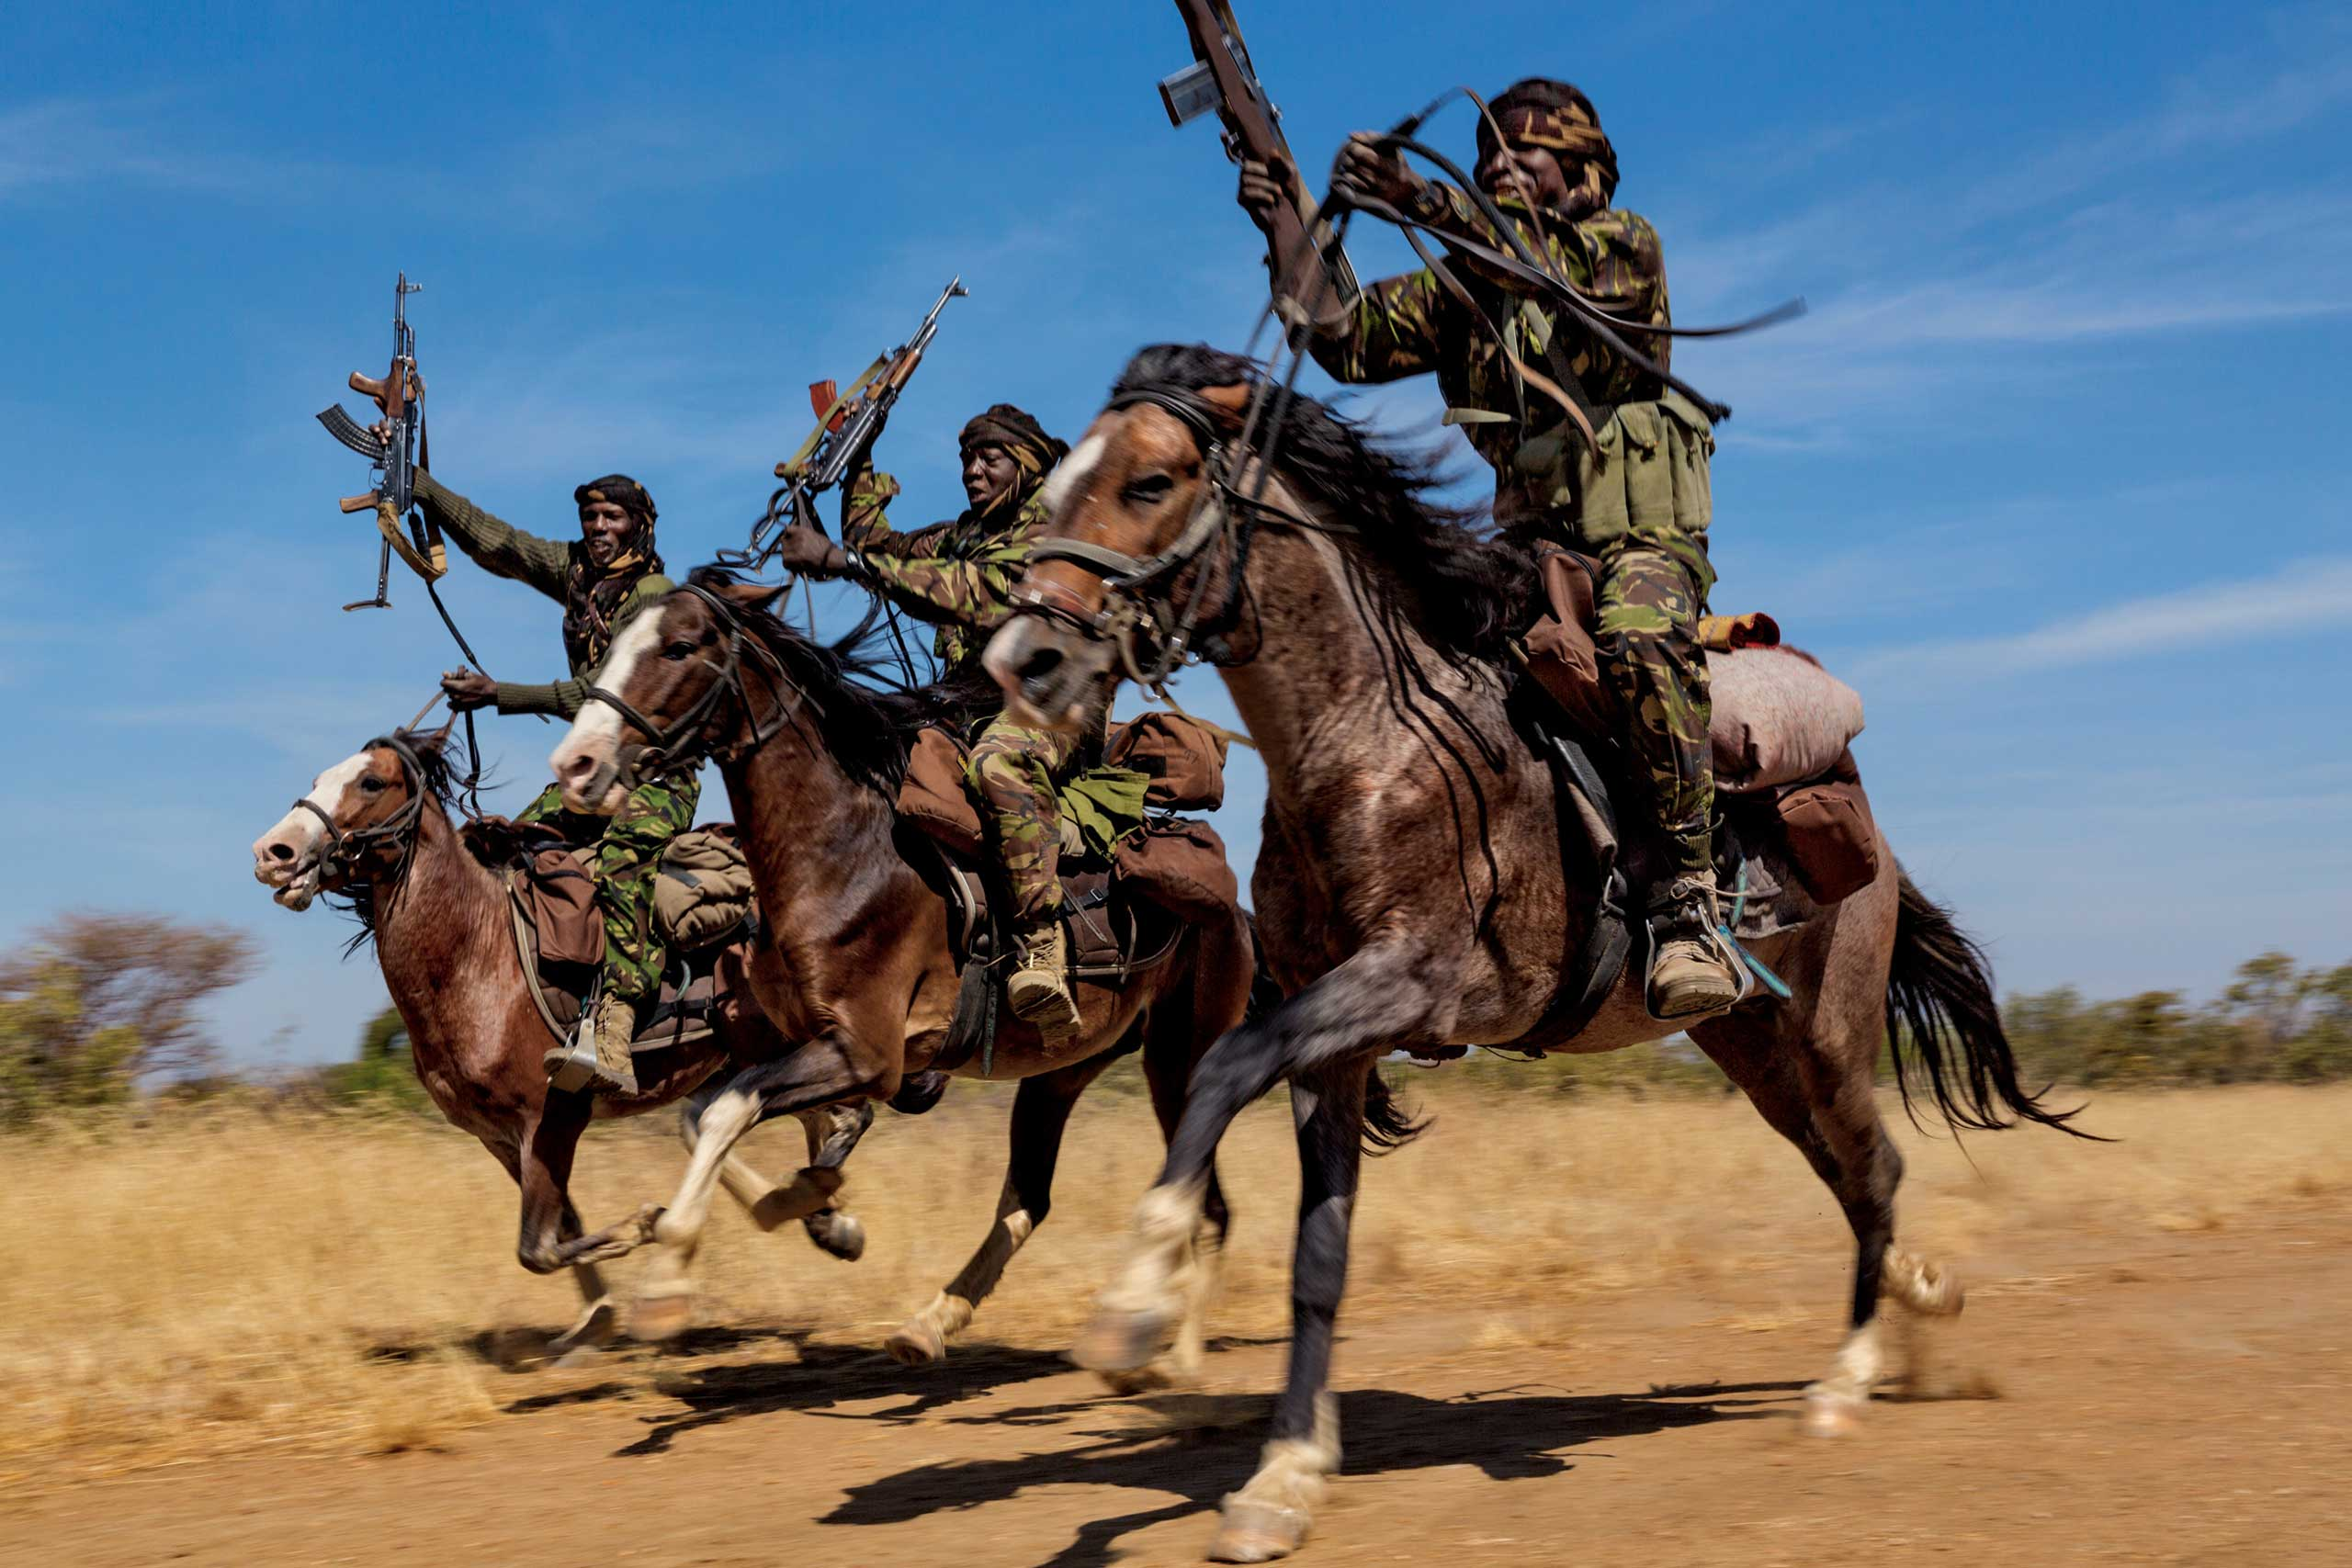 From the September issue of National Geographic magazine: Tracking Ivory:  Terror in Africa Rangers practice their riding skills at Zakouma National Park, in Chad. The park has four mounted ranger teams because horses are the only way to effectively patrol during the wet season, when the elephants head to drier land outside the park.